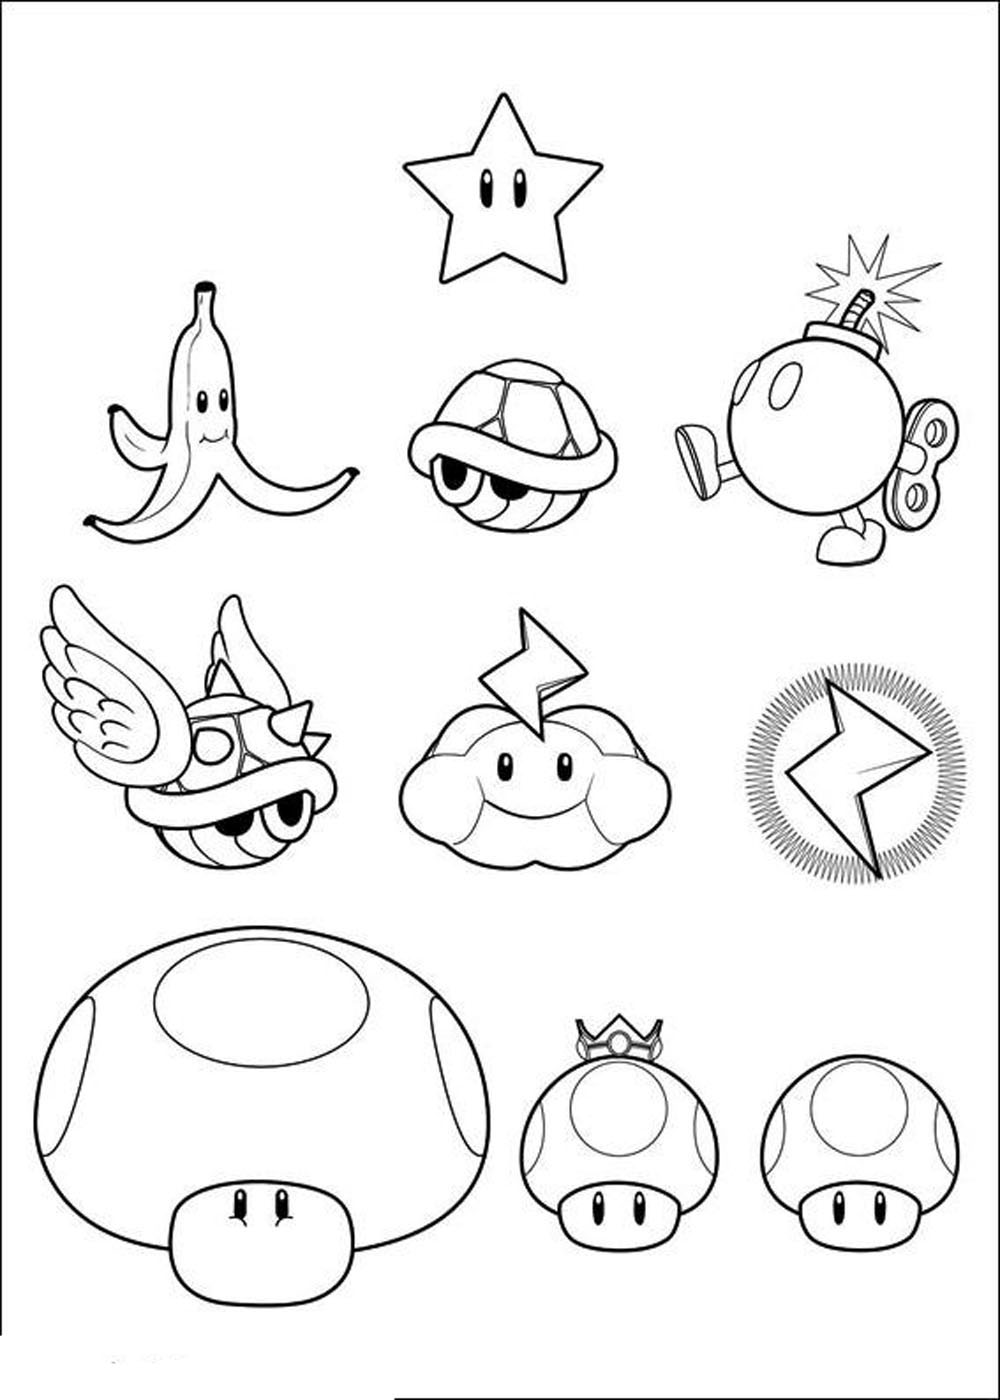 super-mario-bros-printable-coloring-pages | | BestAppsForKids.com